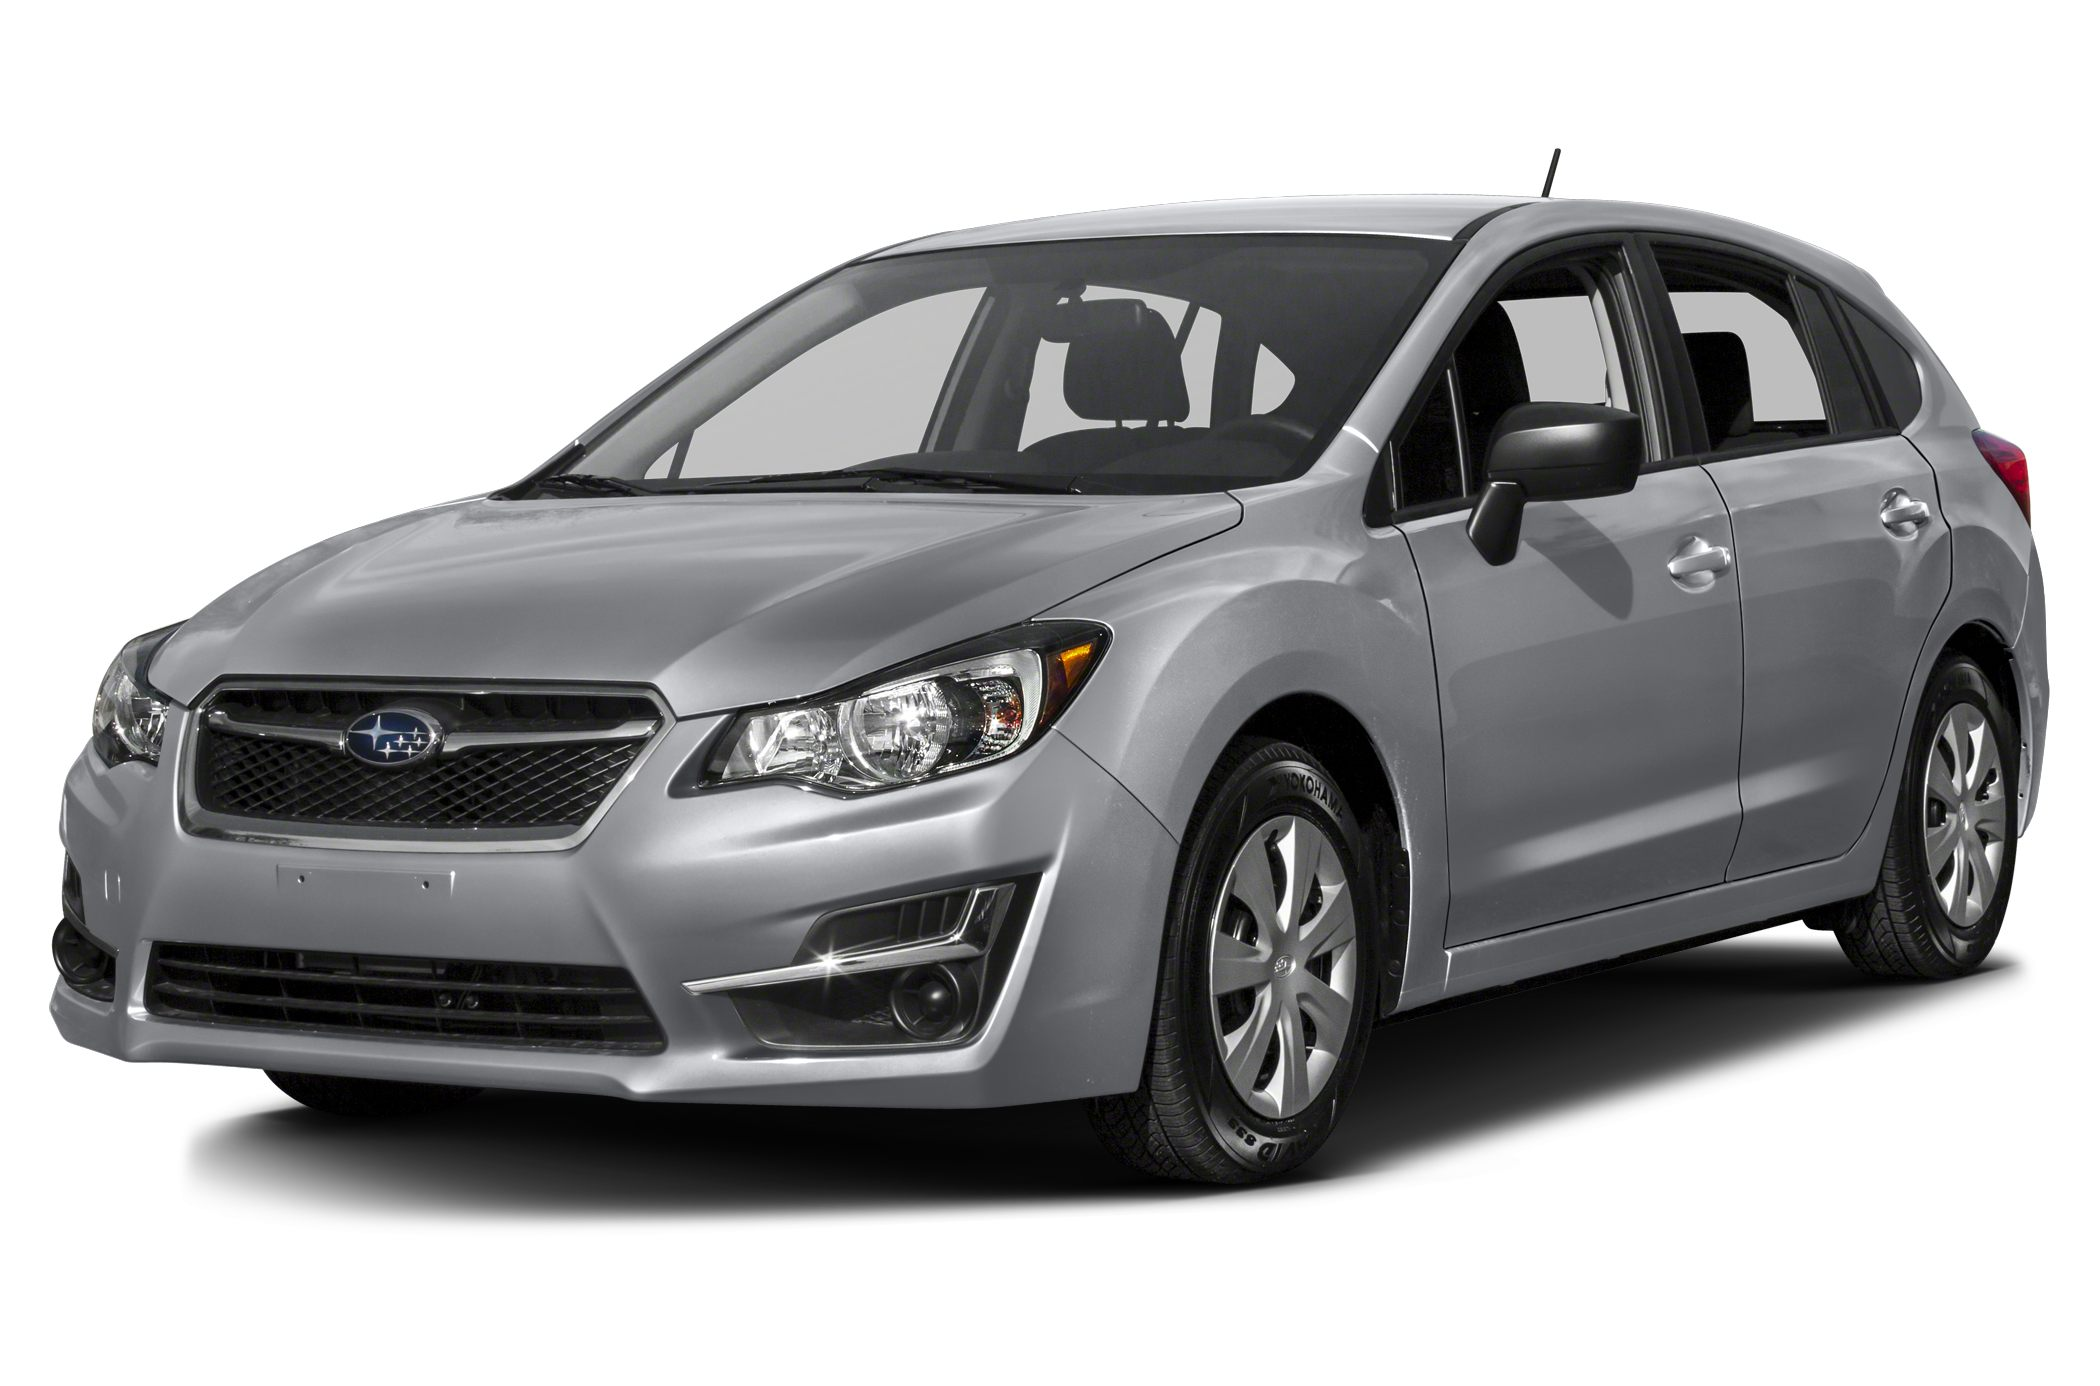 2015 Subaru Impreza 2.0i Sedan for sale in Claremont for $18,990 with 1 miles.